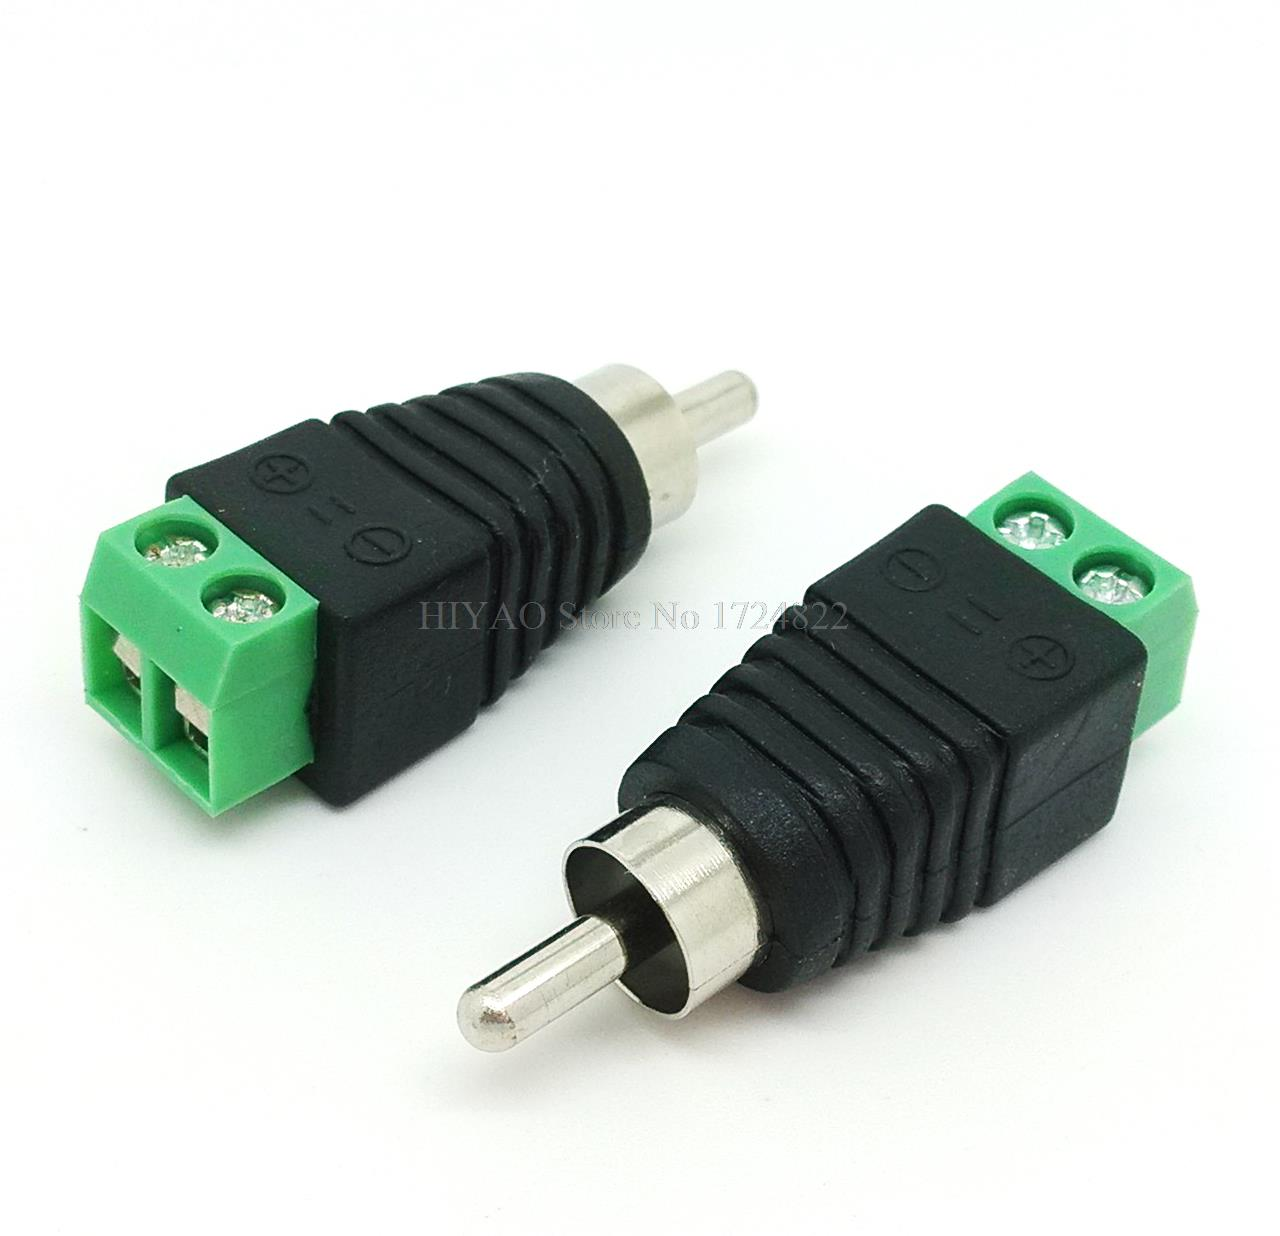 10pcs High Quality Brand New RCA / Phono Male Plug Balun Connector Cable Jack Free Shipping(China (Mainland))